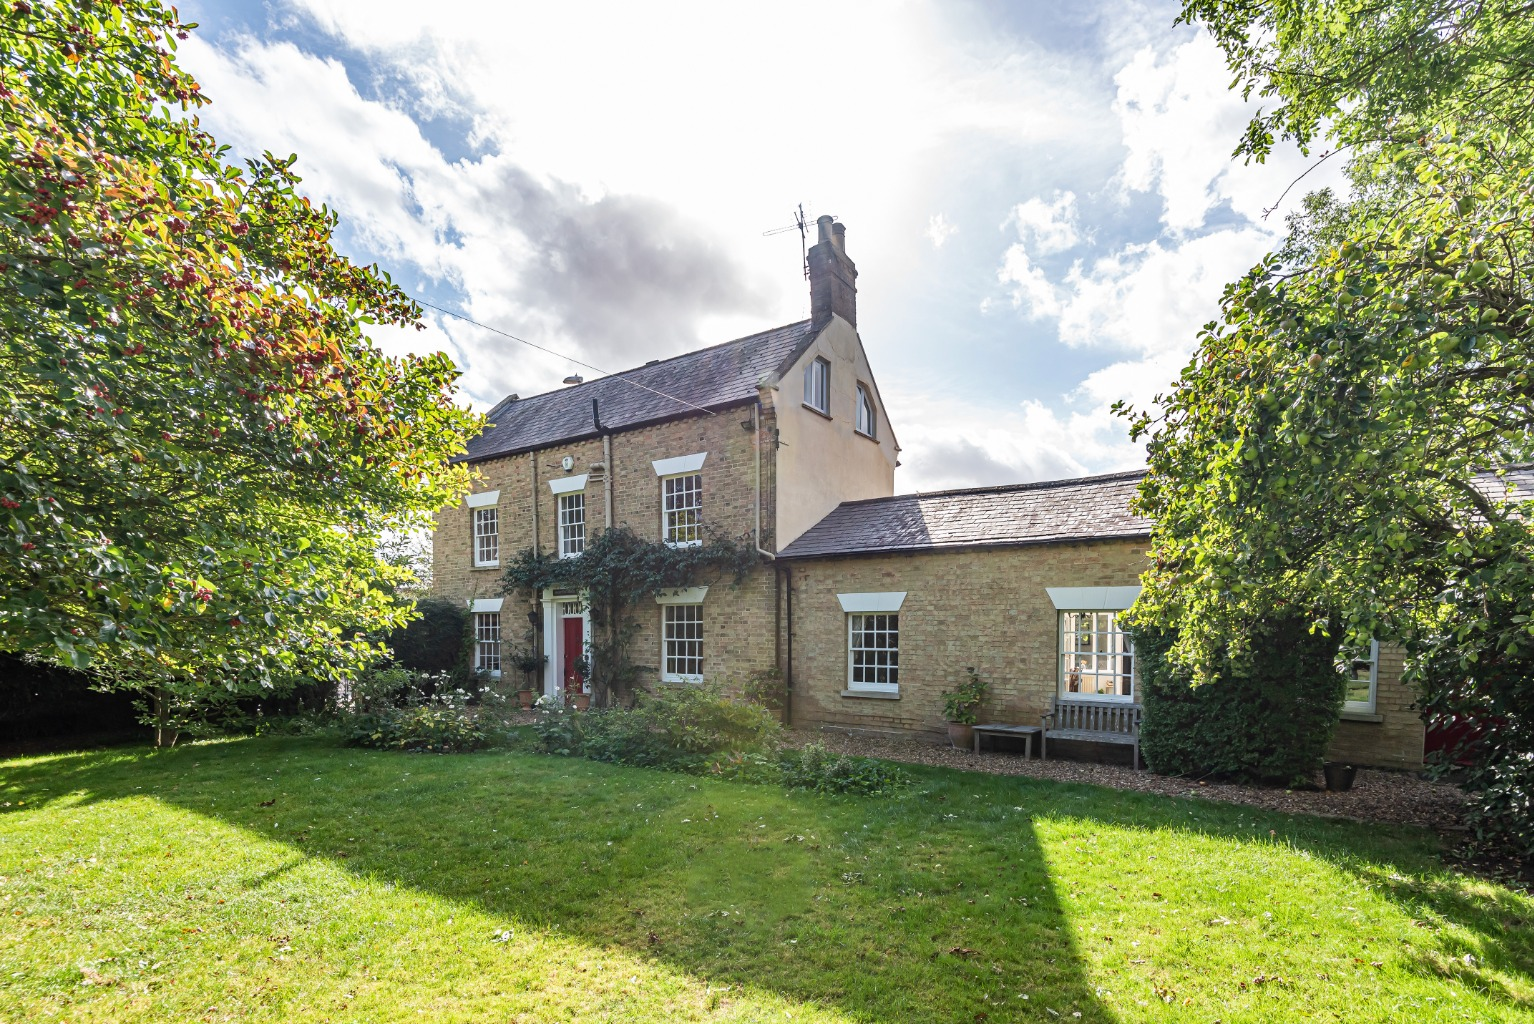 If you are looking for a home with character, charm, elegance and maybe a little bit of grandeur, Marston House has all of that in abundance and much more besides. This stunning, detached, Georgian home is truly a hidden gem, situated within walking distance of St Neots town centre.